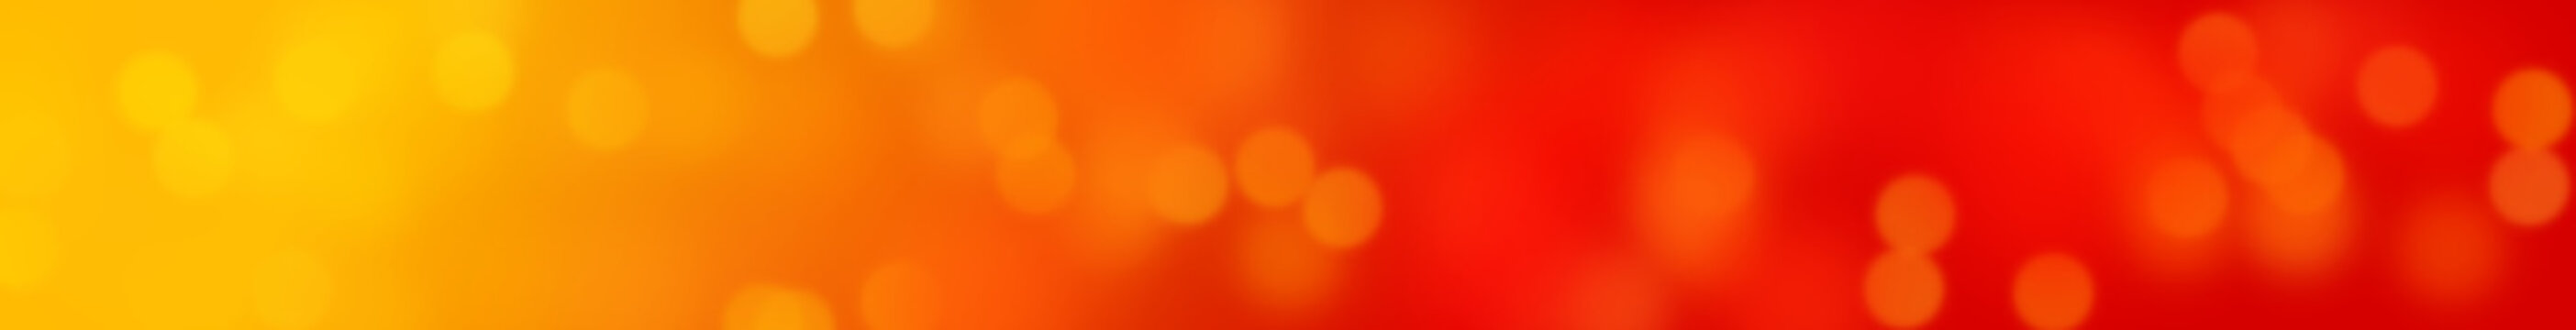 bokeh effect banner background in shades of soft yellow, red and orange